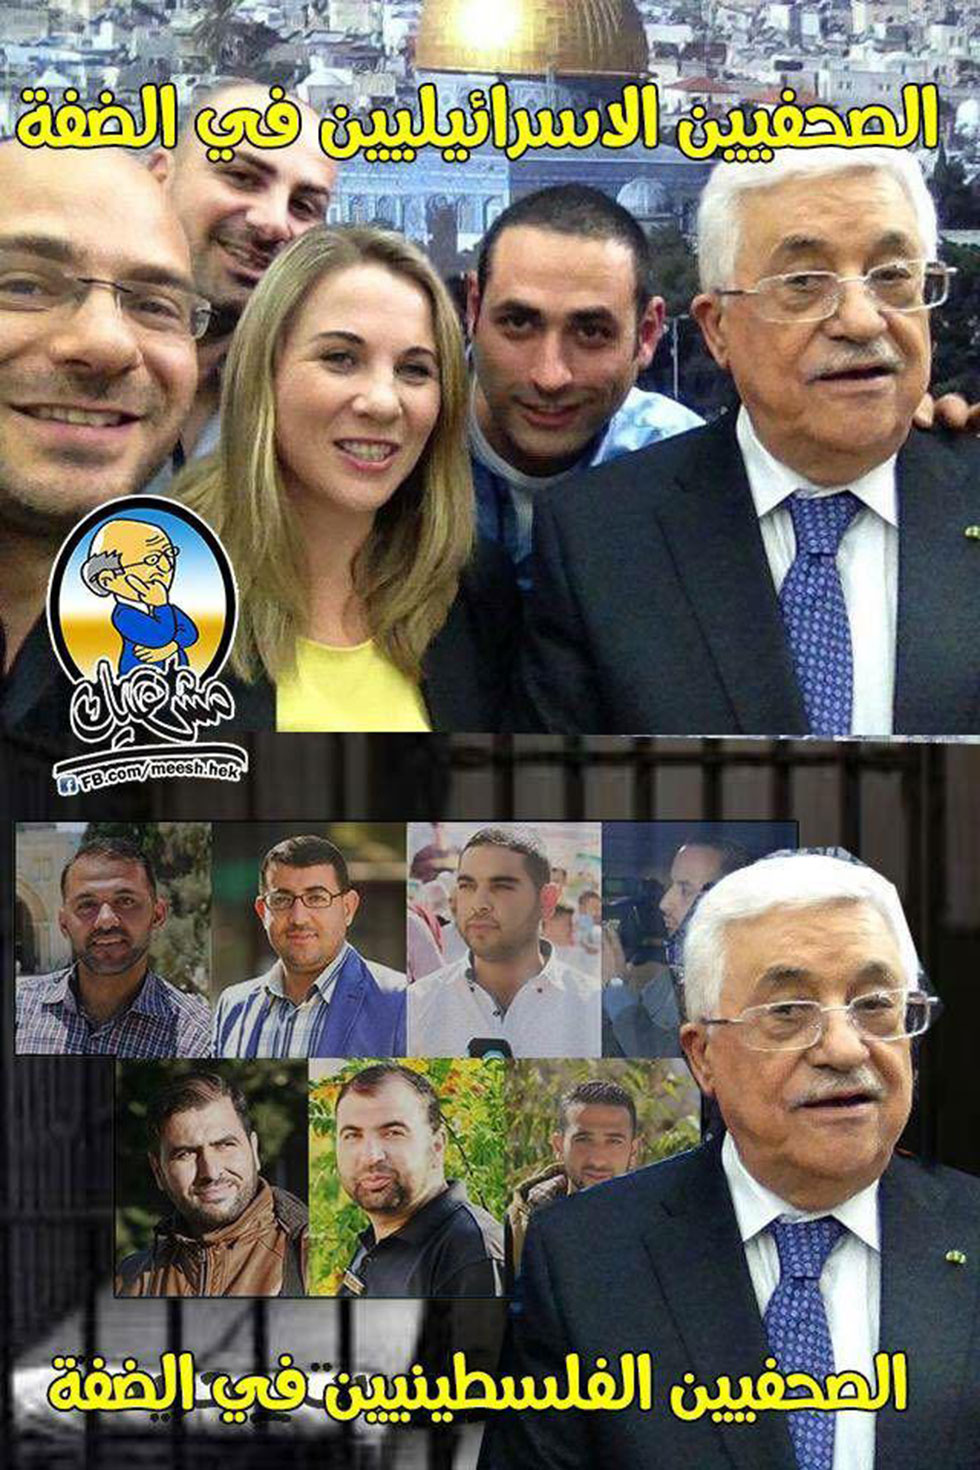 Above: Israeli reporters seen being friendly with Abbas, below: the jailed Palestinian journalists